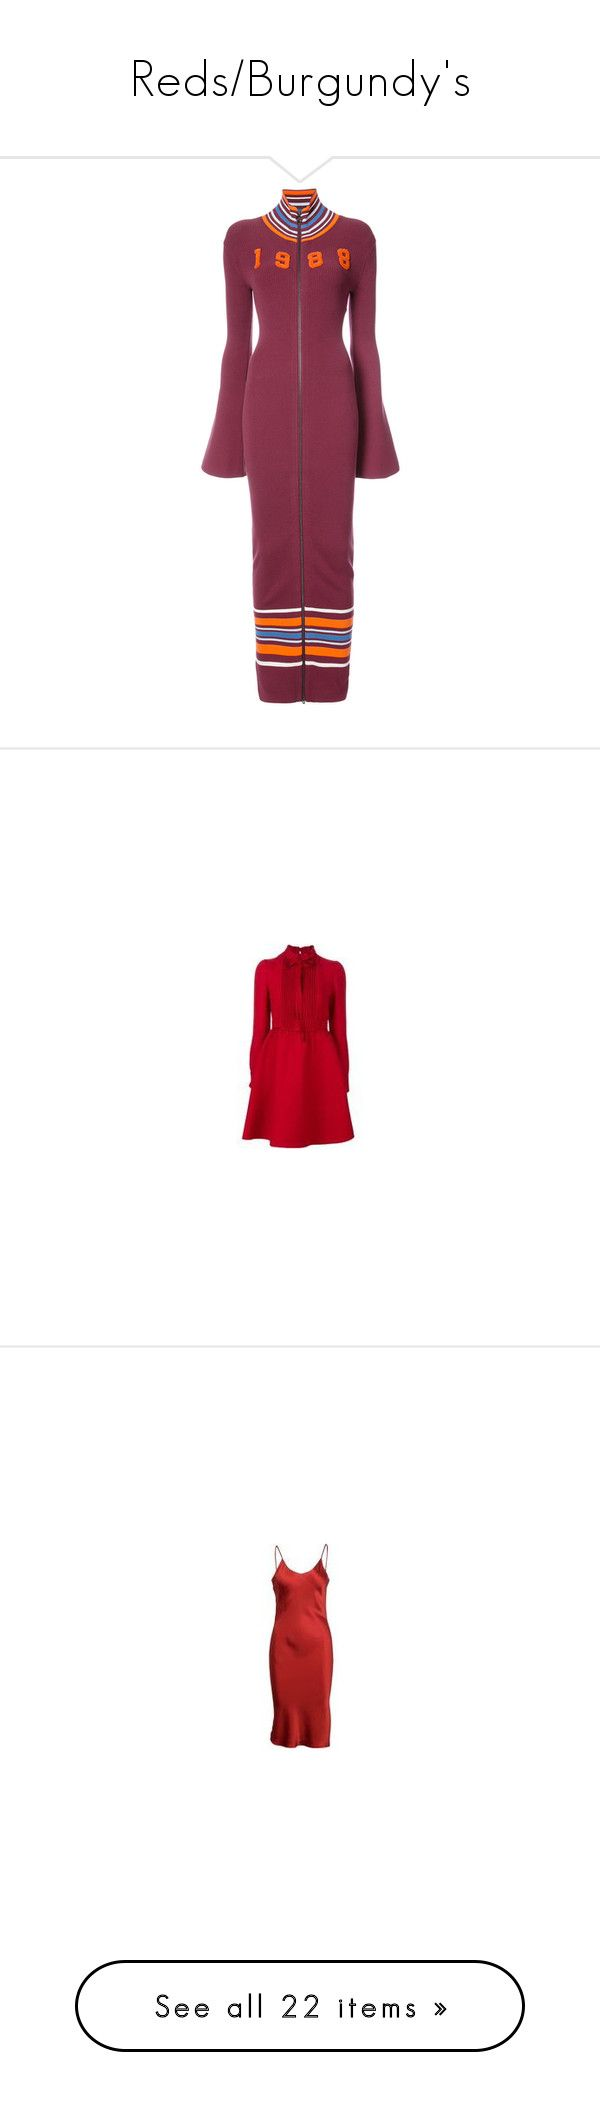 """Reds/Burgundy's"" by miss-amazing-grace ❤ liked on Polyvore featuring dresses, red, purple maxi dress, sweater dress, sweater maxi dresses, multi colored maxi dresses, purple sweater dress, oversized jersey dress, t shirt dress and jersey t shirt dress"